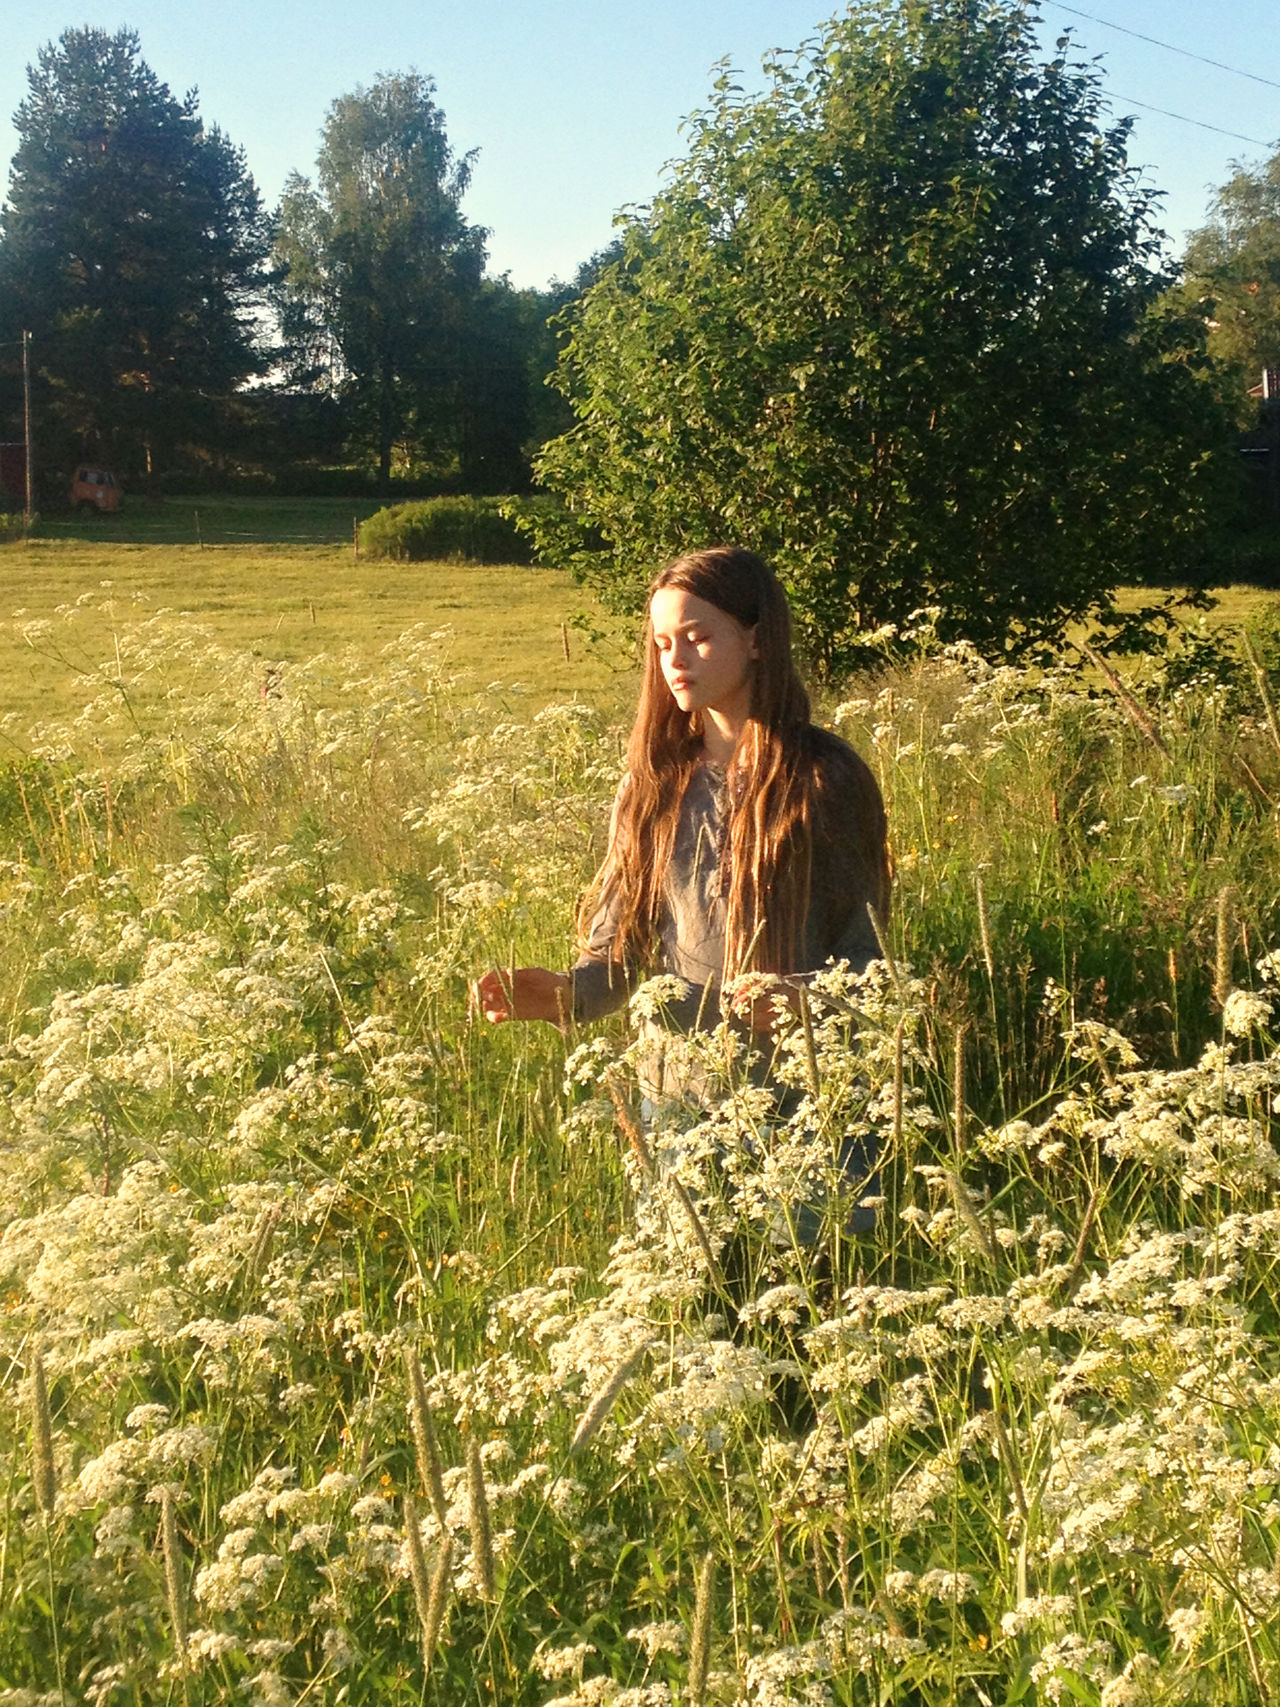 Alone Carefree Casual Clothing Dalarna Day Escapism Field Front View Full Length Getting Away From It All Grass Grassy Green Color Lifestyles Real People Relaxation SOMMARLOV Sommarsverige Standing Summer Summertime Sweden Women